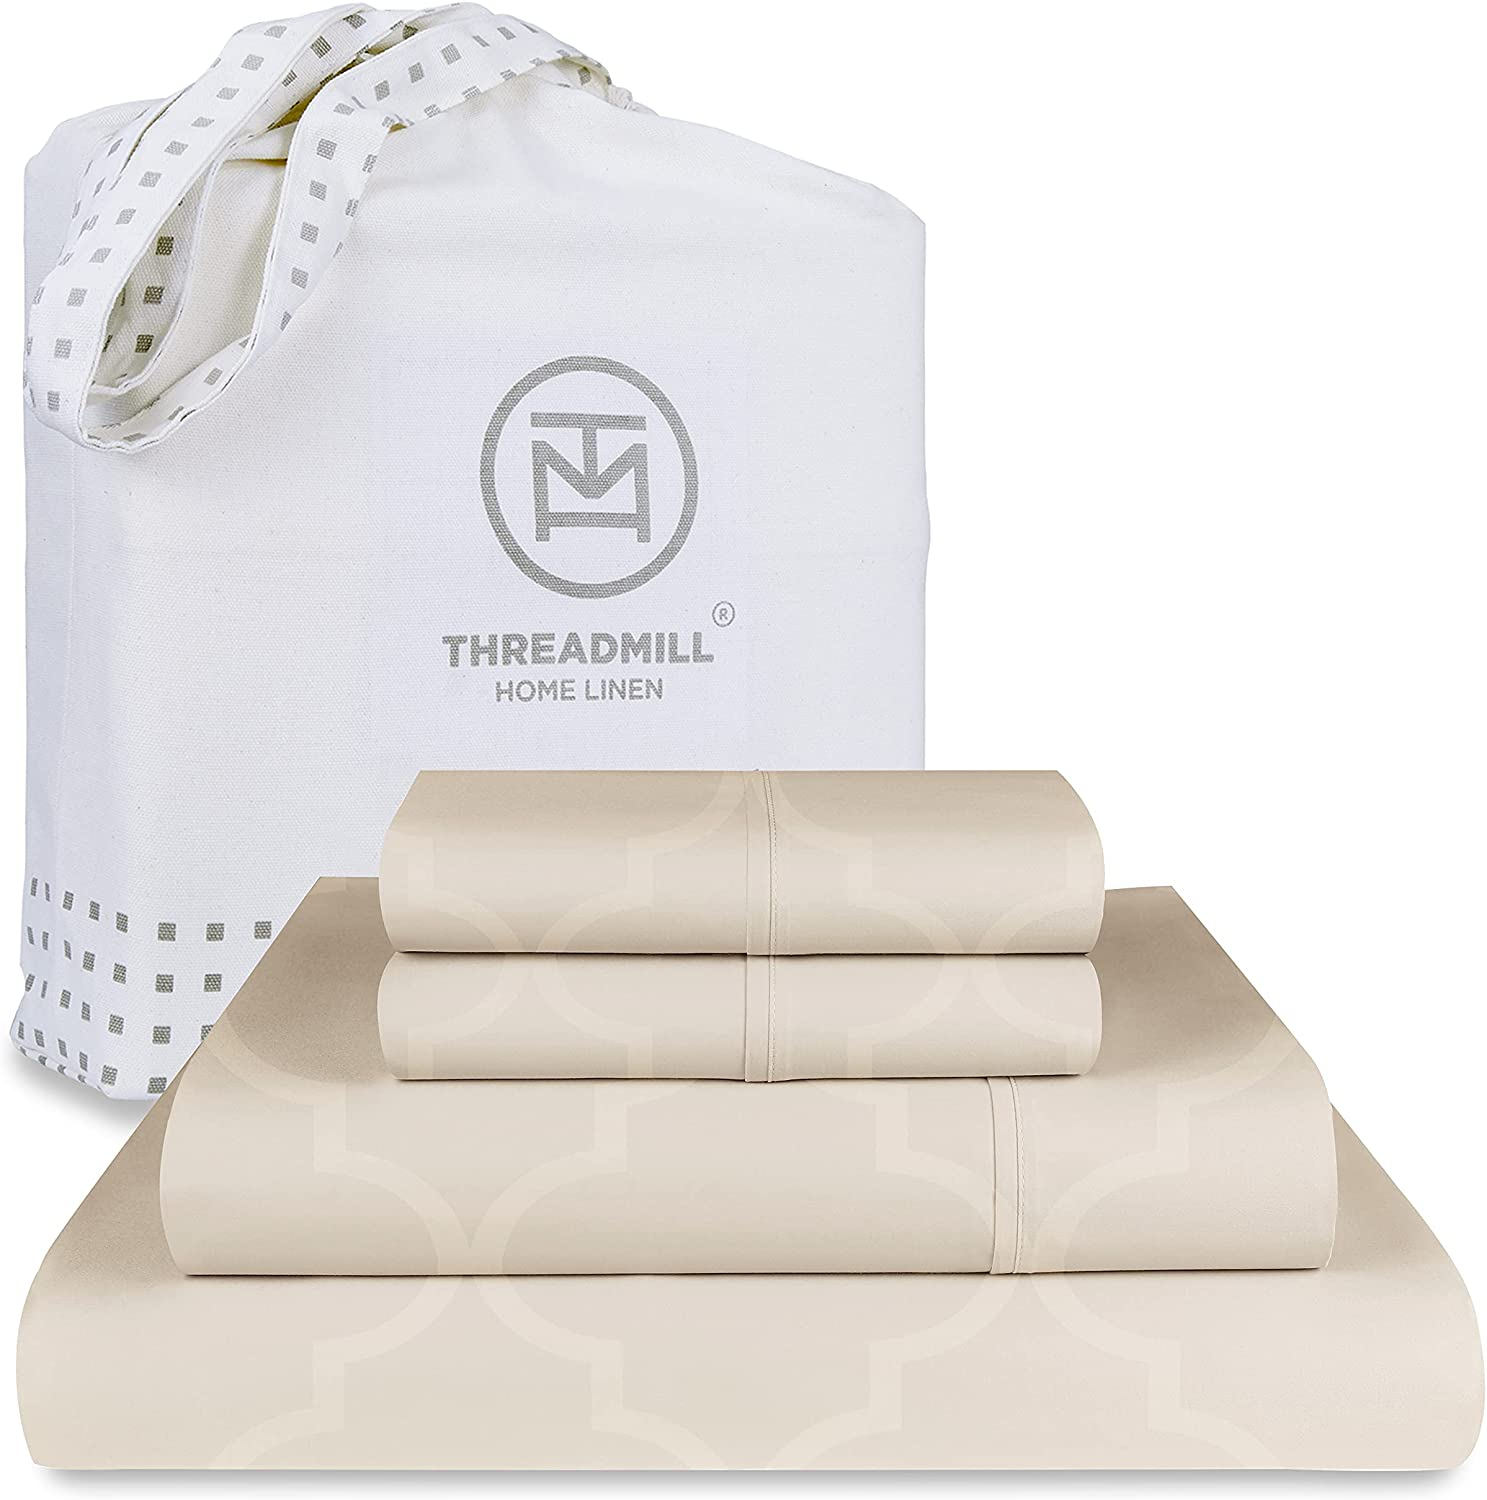 Threadmill Home Linen King Sheets - Pure Long Staple Cotton Tradition Jacquard Damask Weave, 4 Piece 300 Thread Count Bedsheet Set, Hotel Quality Beige Sheets with Elasticized Deep Pocket